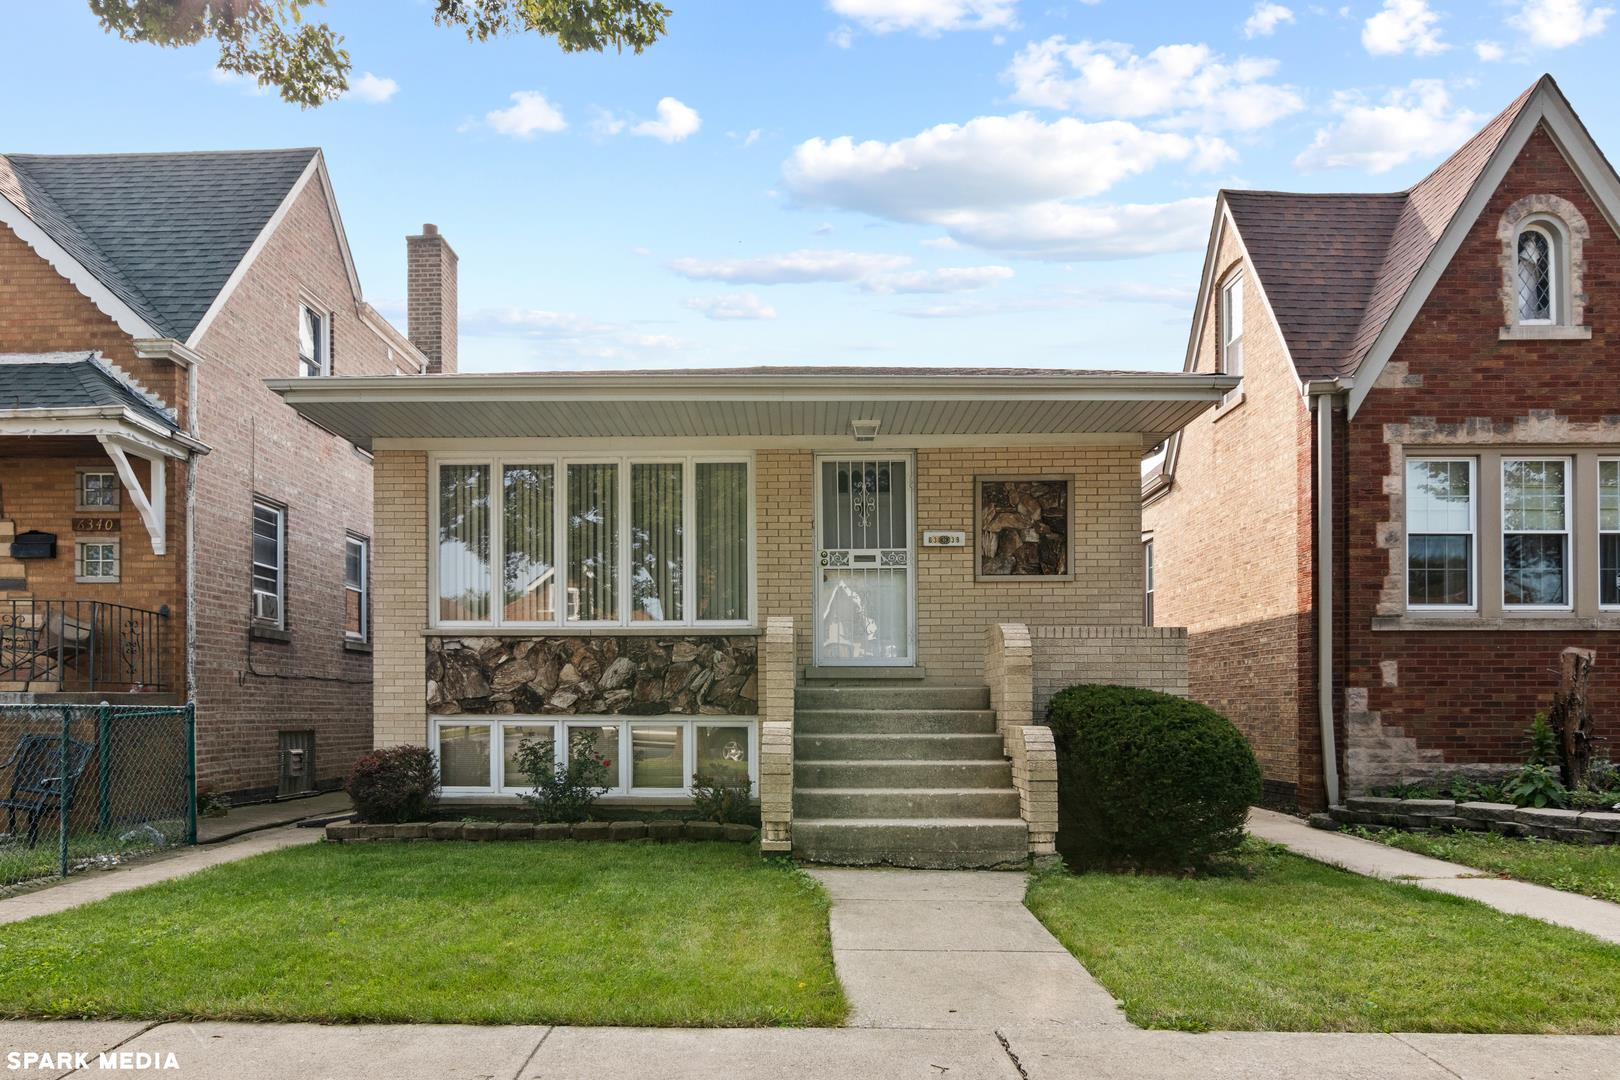 6338 S KEDVALE Avenue, Chicago, IL 60629 - #: 10859785